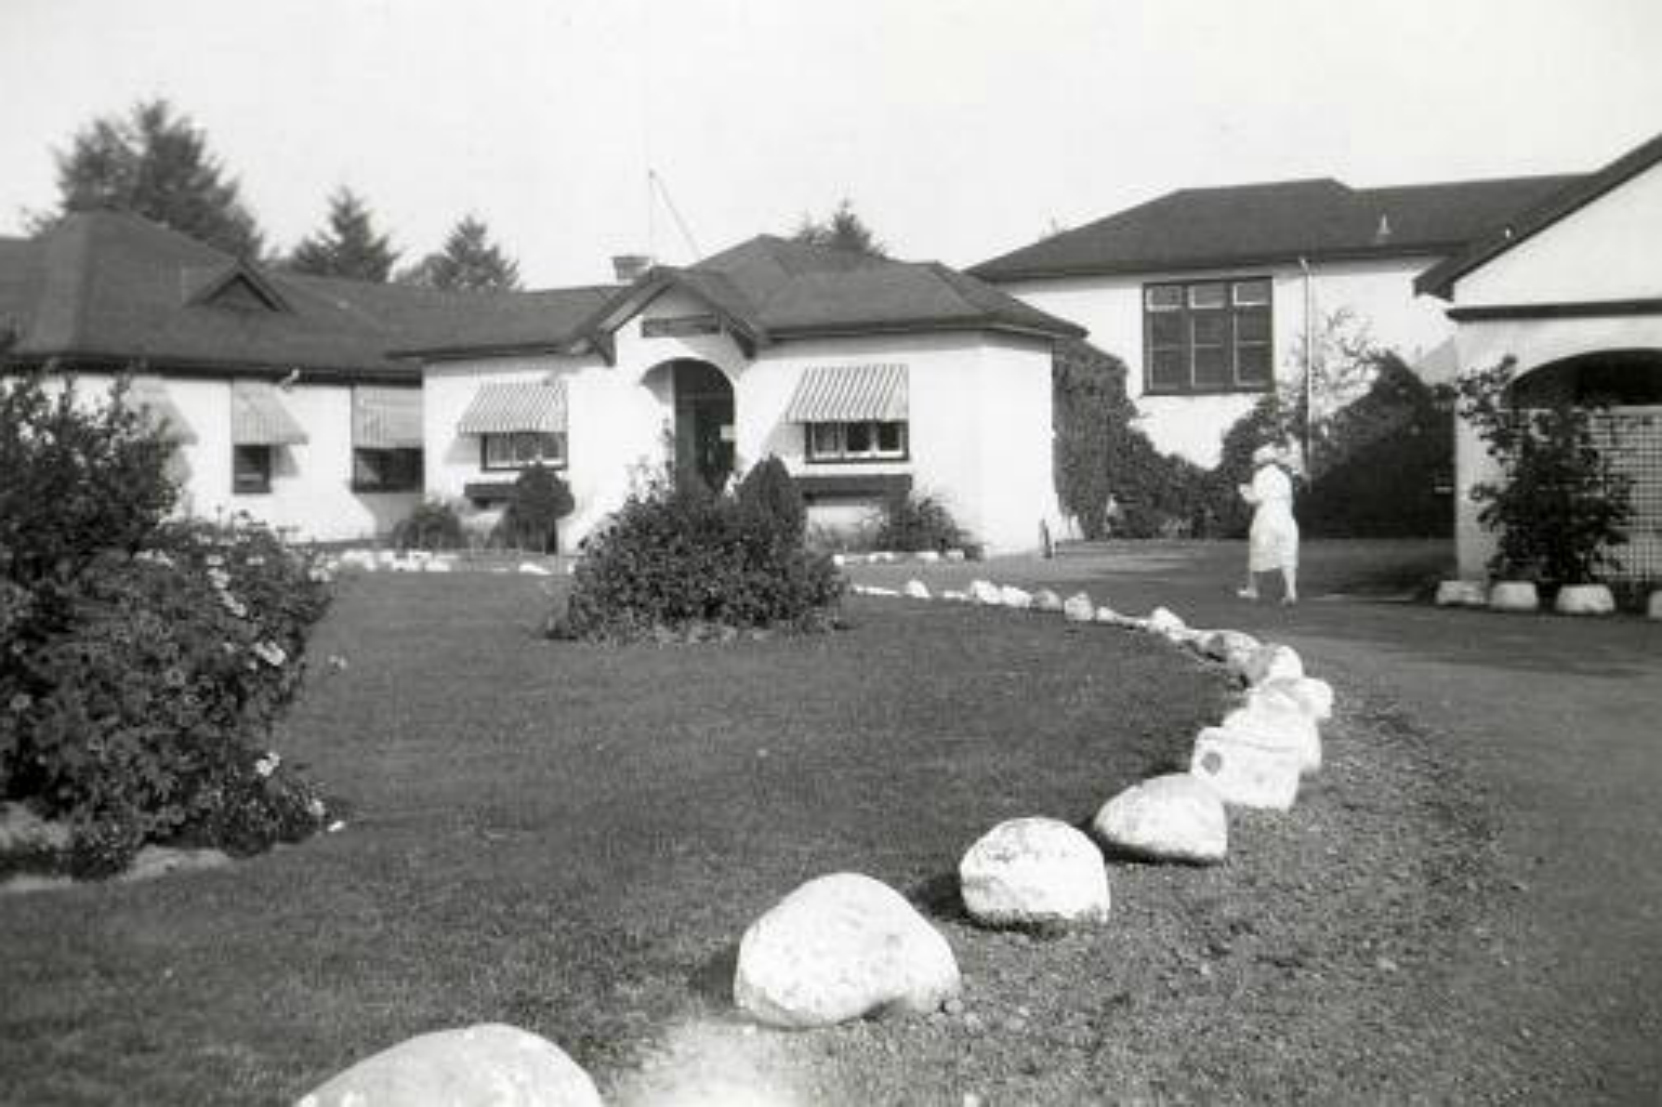 King's Daughters' Hospital, Duncan, B.C., circa 1940. This building has since been demolished and replaced by the Cairnsmore long term care facility.